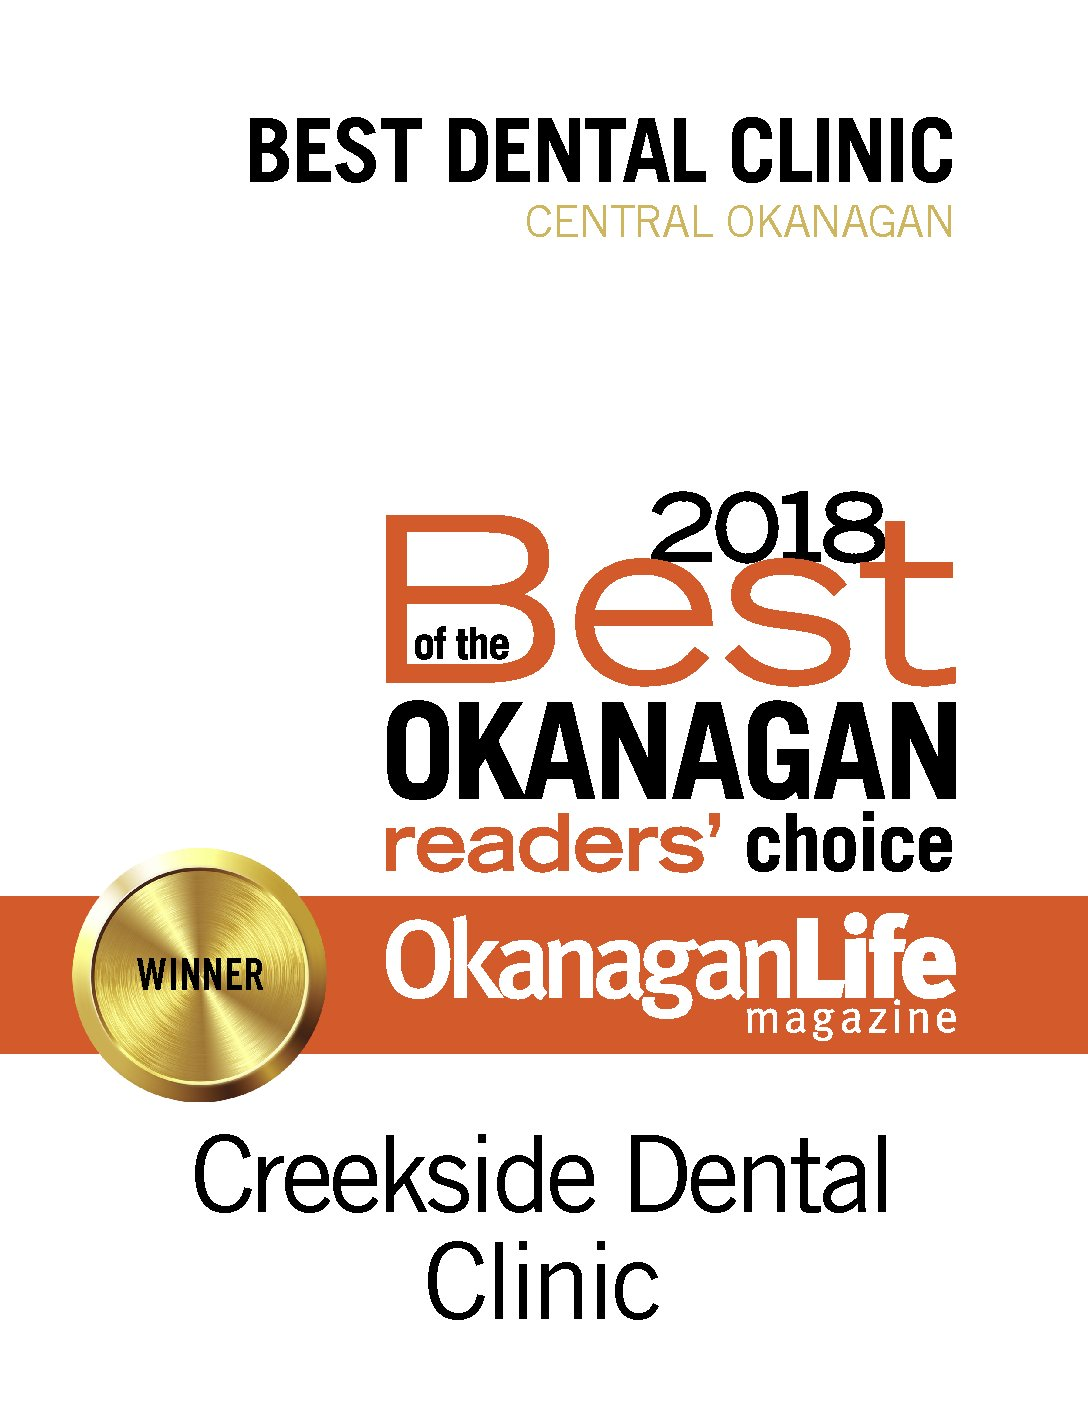 Creekside Dental Clinic